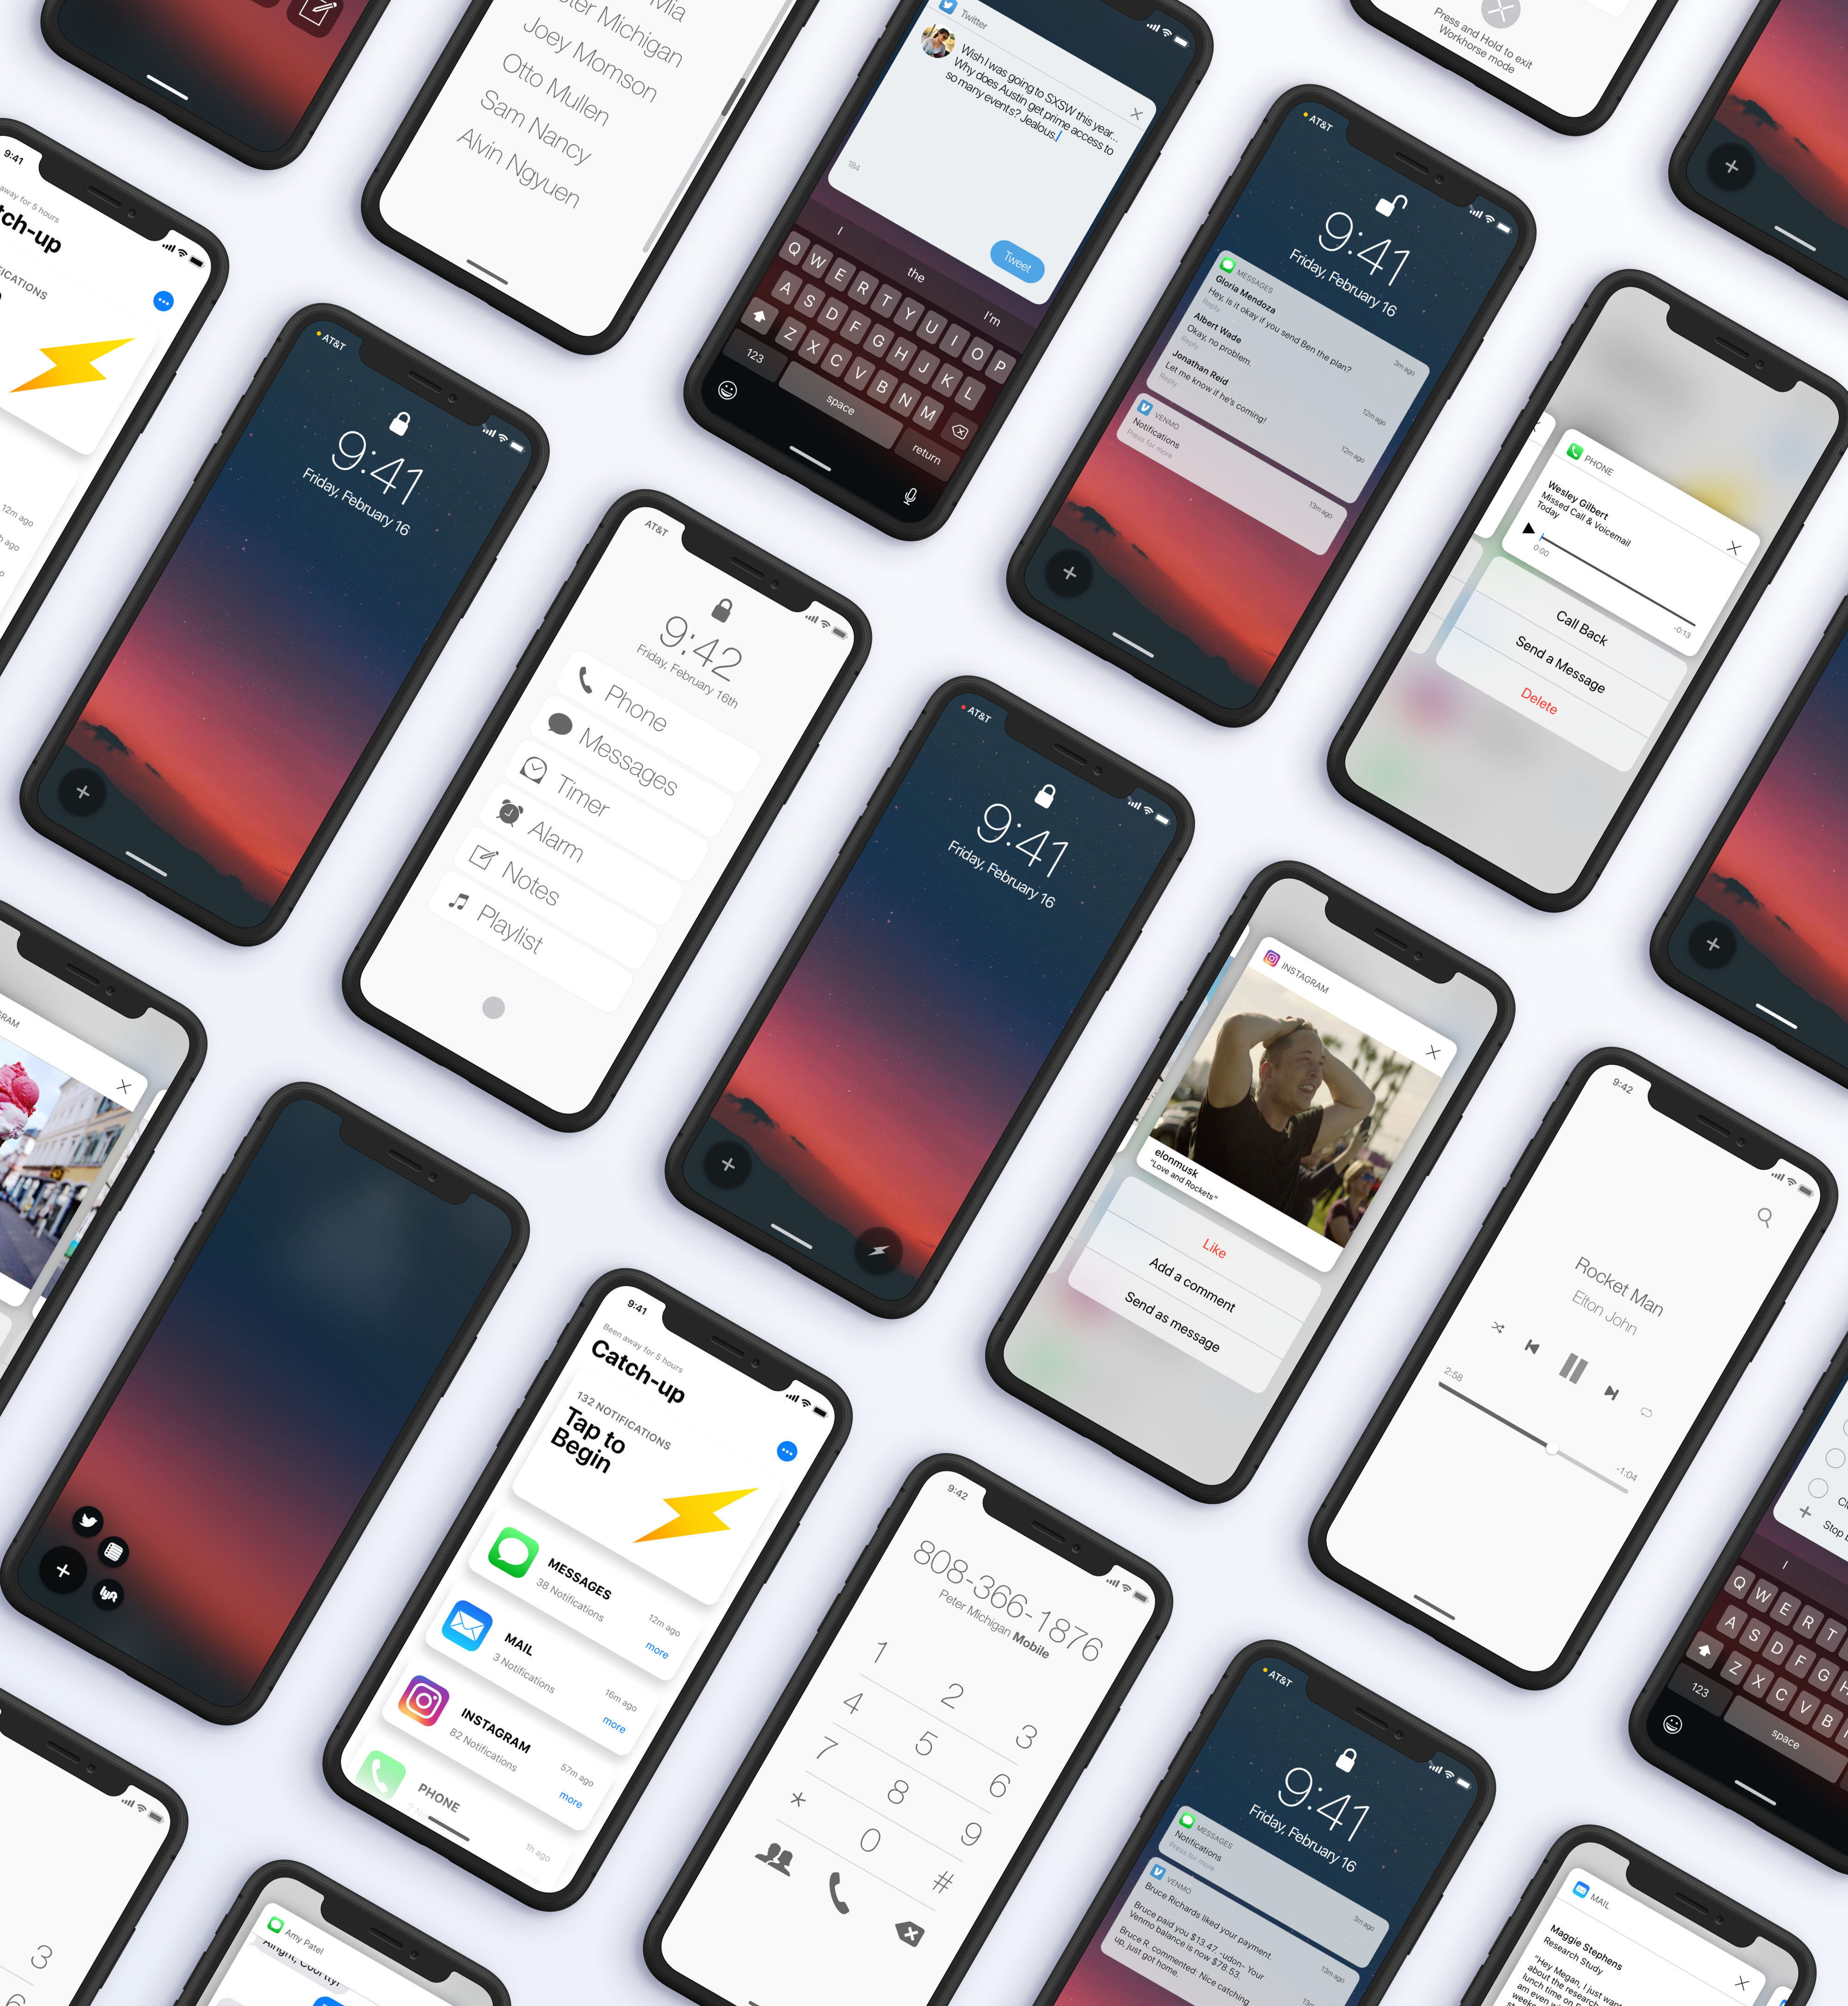 UI/UX Case Study: Mindful — an iOS extension for healthier usage